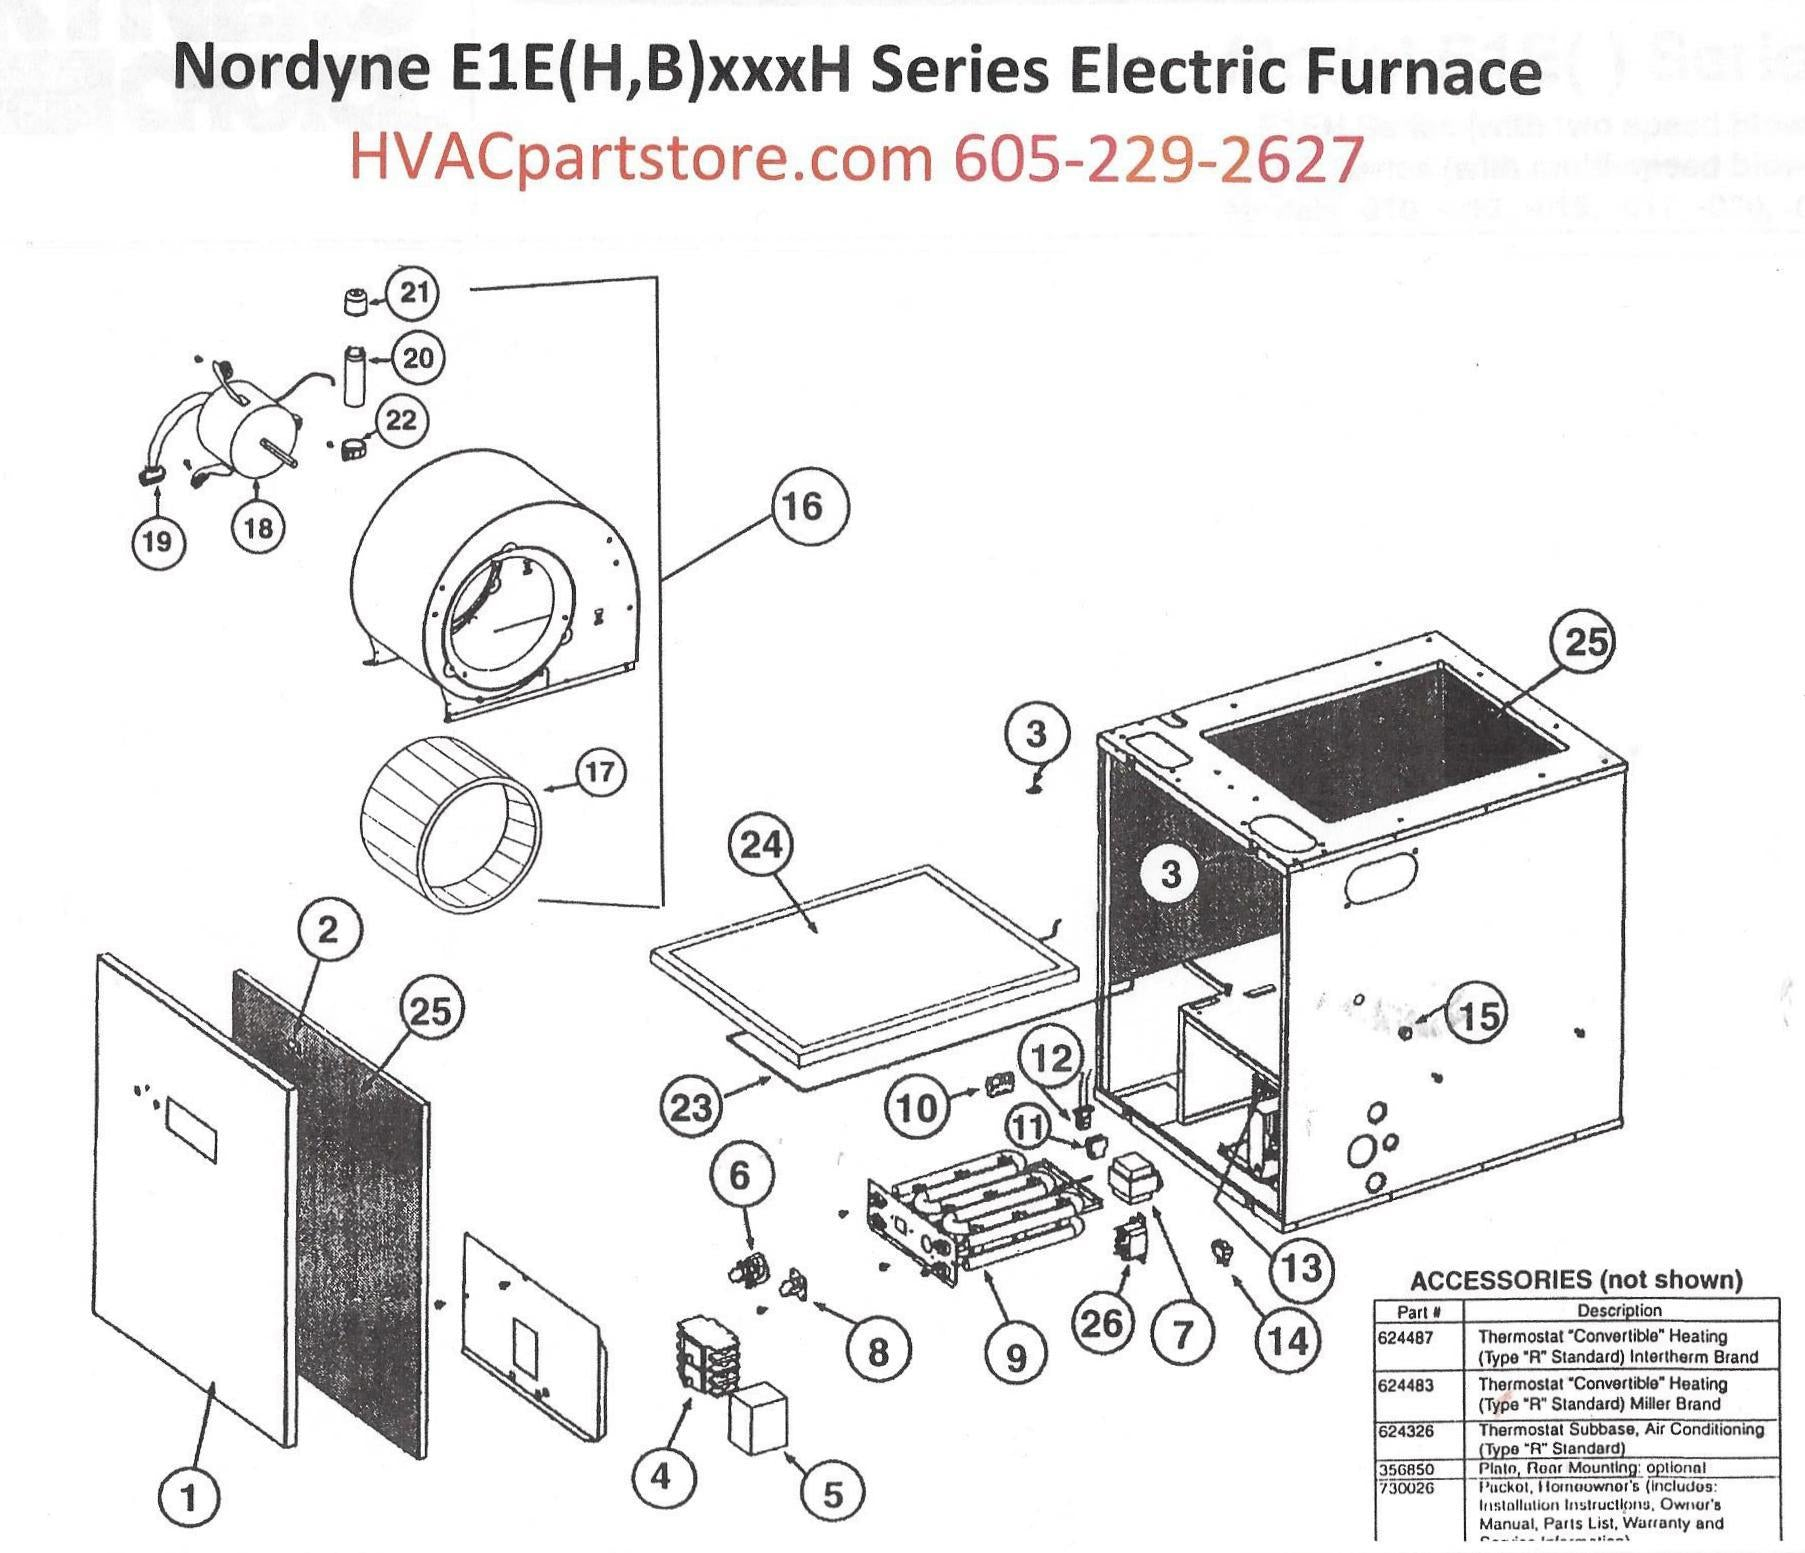 coleman evcon electric furnace wiring diagram coleman discover central electric furnace eb20b wiring diagram